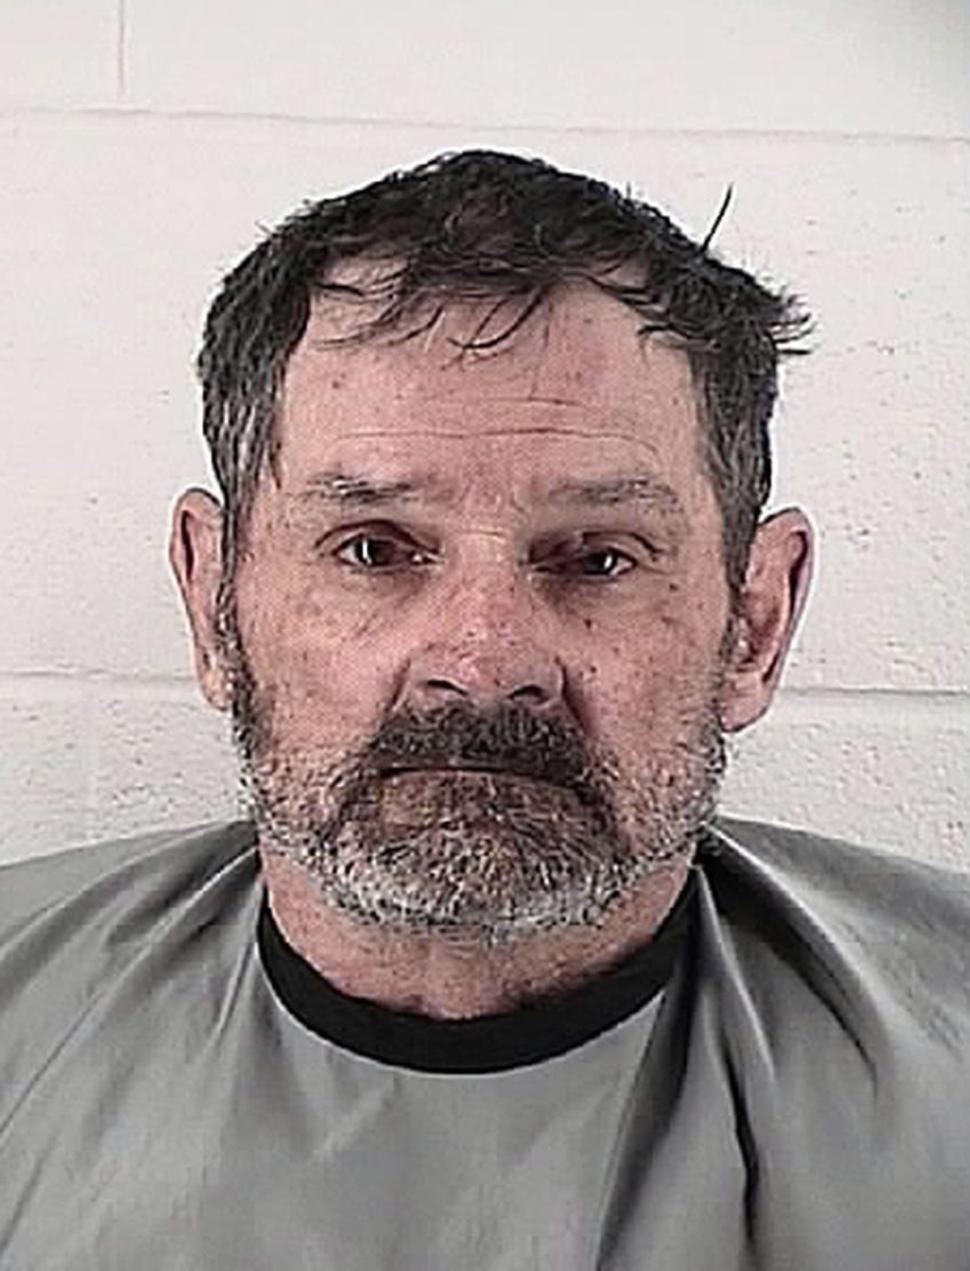 The prosecutor has decided to seek the death penalty for Frazier Glenn Miller (Photo credit: Johnson County Sheriff's Office)